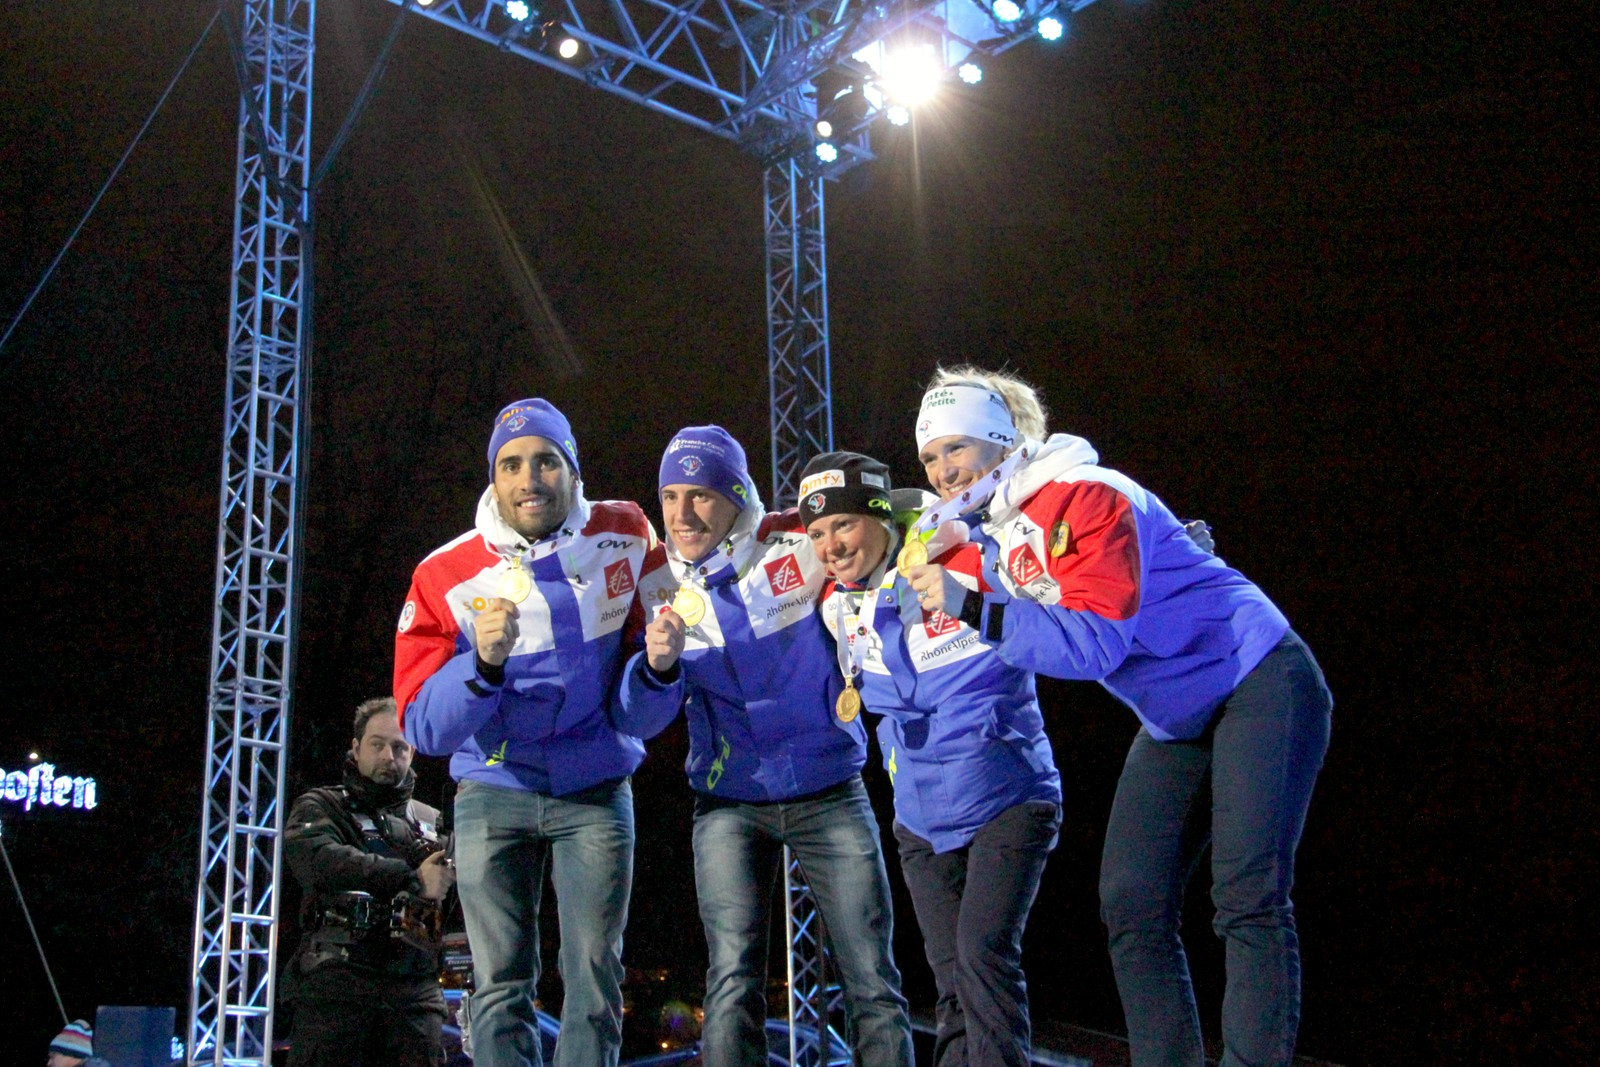 French gold medal winners, from left: Martin Fourcade, Quentin Fillon Maillet, Anais Bescond and Marie Dorin Habert